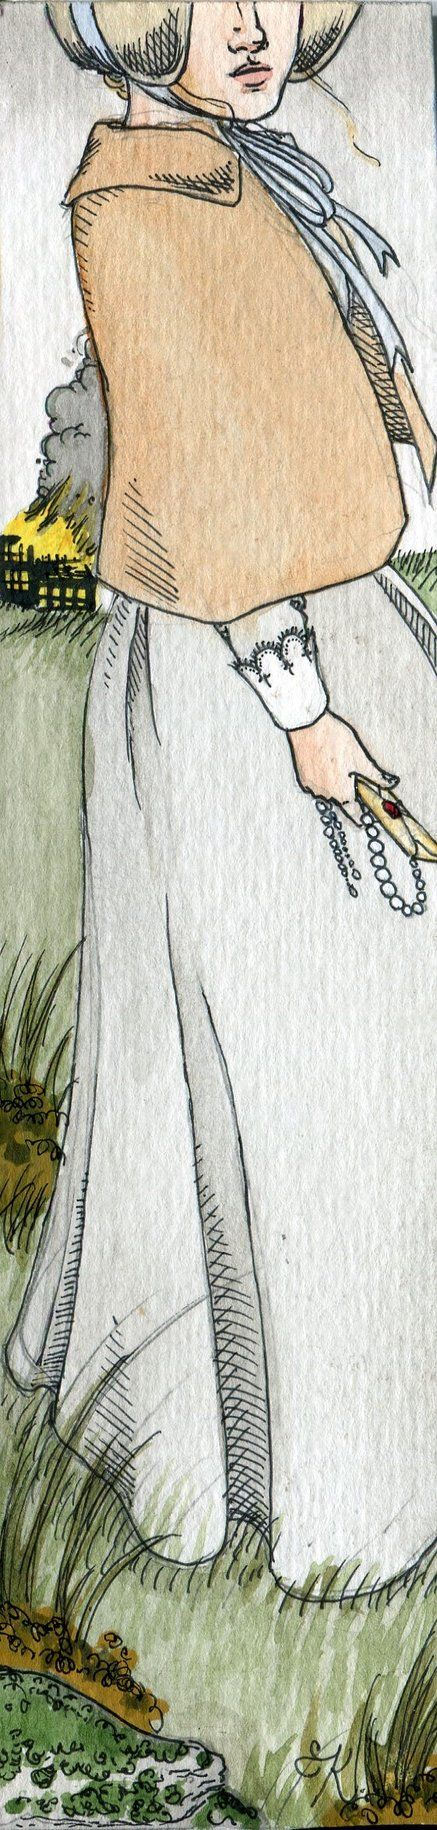 Jane Eyre Bookmark by Kitty-Grimm on deviantART